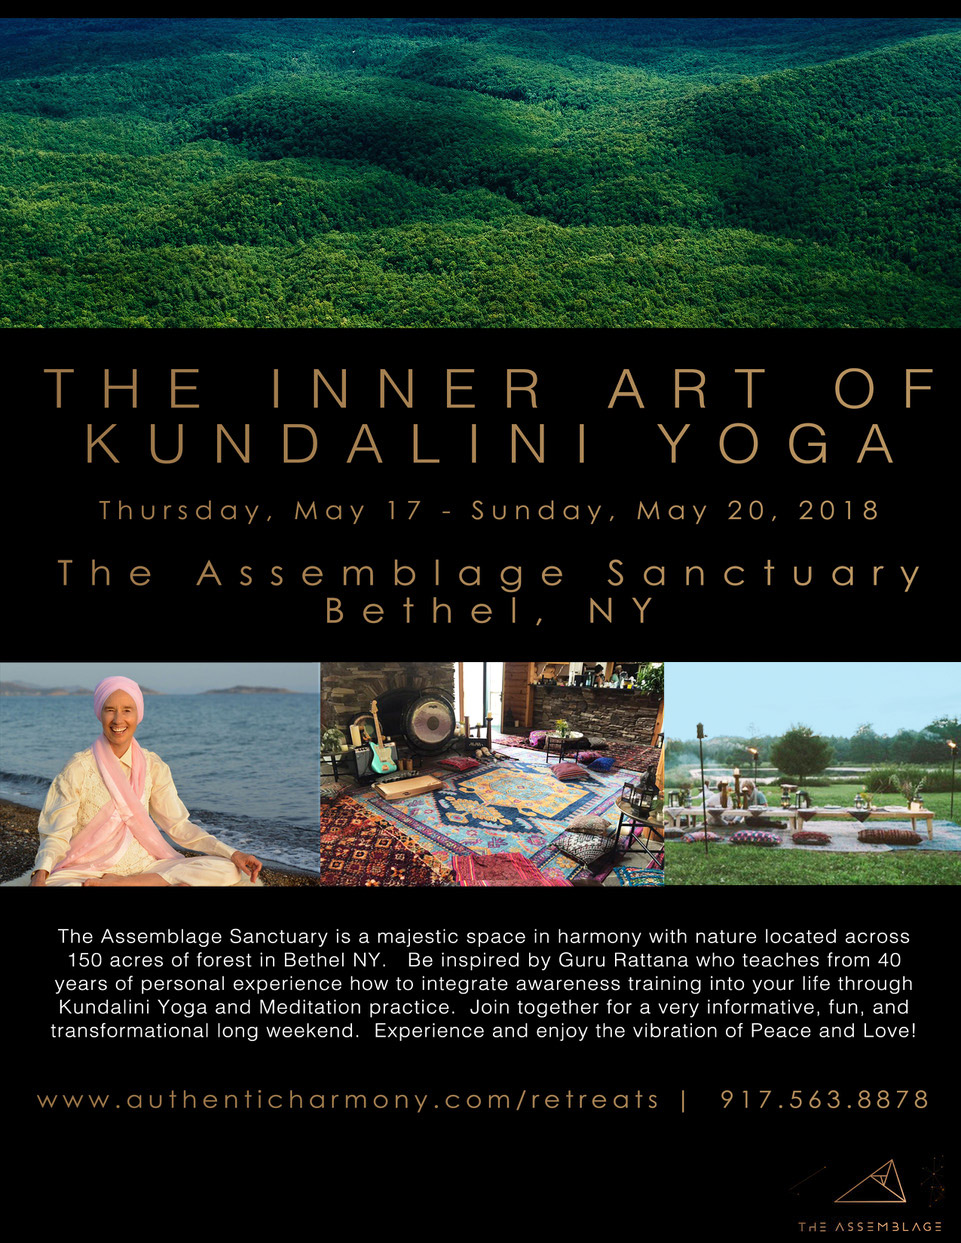 Come and enjoy a unique experience of learning from a great master teacher, Guru Rattana, to enhance your spiritual practice.   Register with a $350 unrefundable deposit by Paypal to  info@authenticharmony.com   She is a revolutionary teacher who combines the subtle realms, esoteric treasures, and the impact of a powerful joyous space.  The brand new Assemblage Sanctuary,in Bethel, NY,provides a bucolic, green setting of 150 acres of diverse landscapes where you will be immersed in nature.  Relish the stillness and quiet of cabins that retreat into the woods,hiking and bike trails,natural ponds, and forest trails. Also an infrared sauna to unwind and relax.  We will practice yoga & meditation in a specially constructed yurt on the grounds.  Our vegan chef provides delicious organic dining for all meals.  Treat yourself and relax in the Assemblage Sanctuary which was inspired by a belief that human beings possess an innate tendency to seek connections with nature and other living systems.    Transportation to the Assemblage:    Take Coach USA bus from Port Authority to Monticello station.     At Monticello 20 minute Taxi or Uber ride to:    75 Matt Smith Rd.  Cochecton, New York